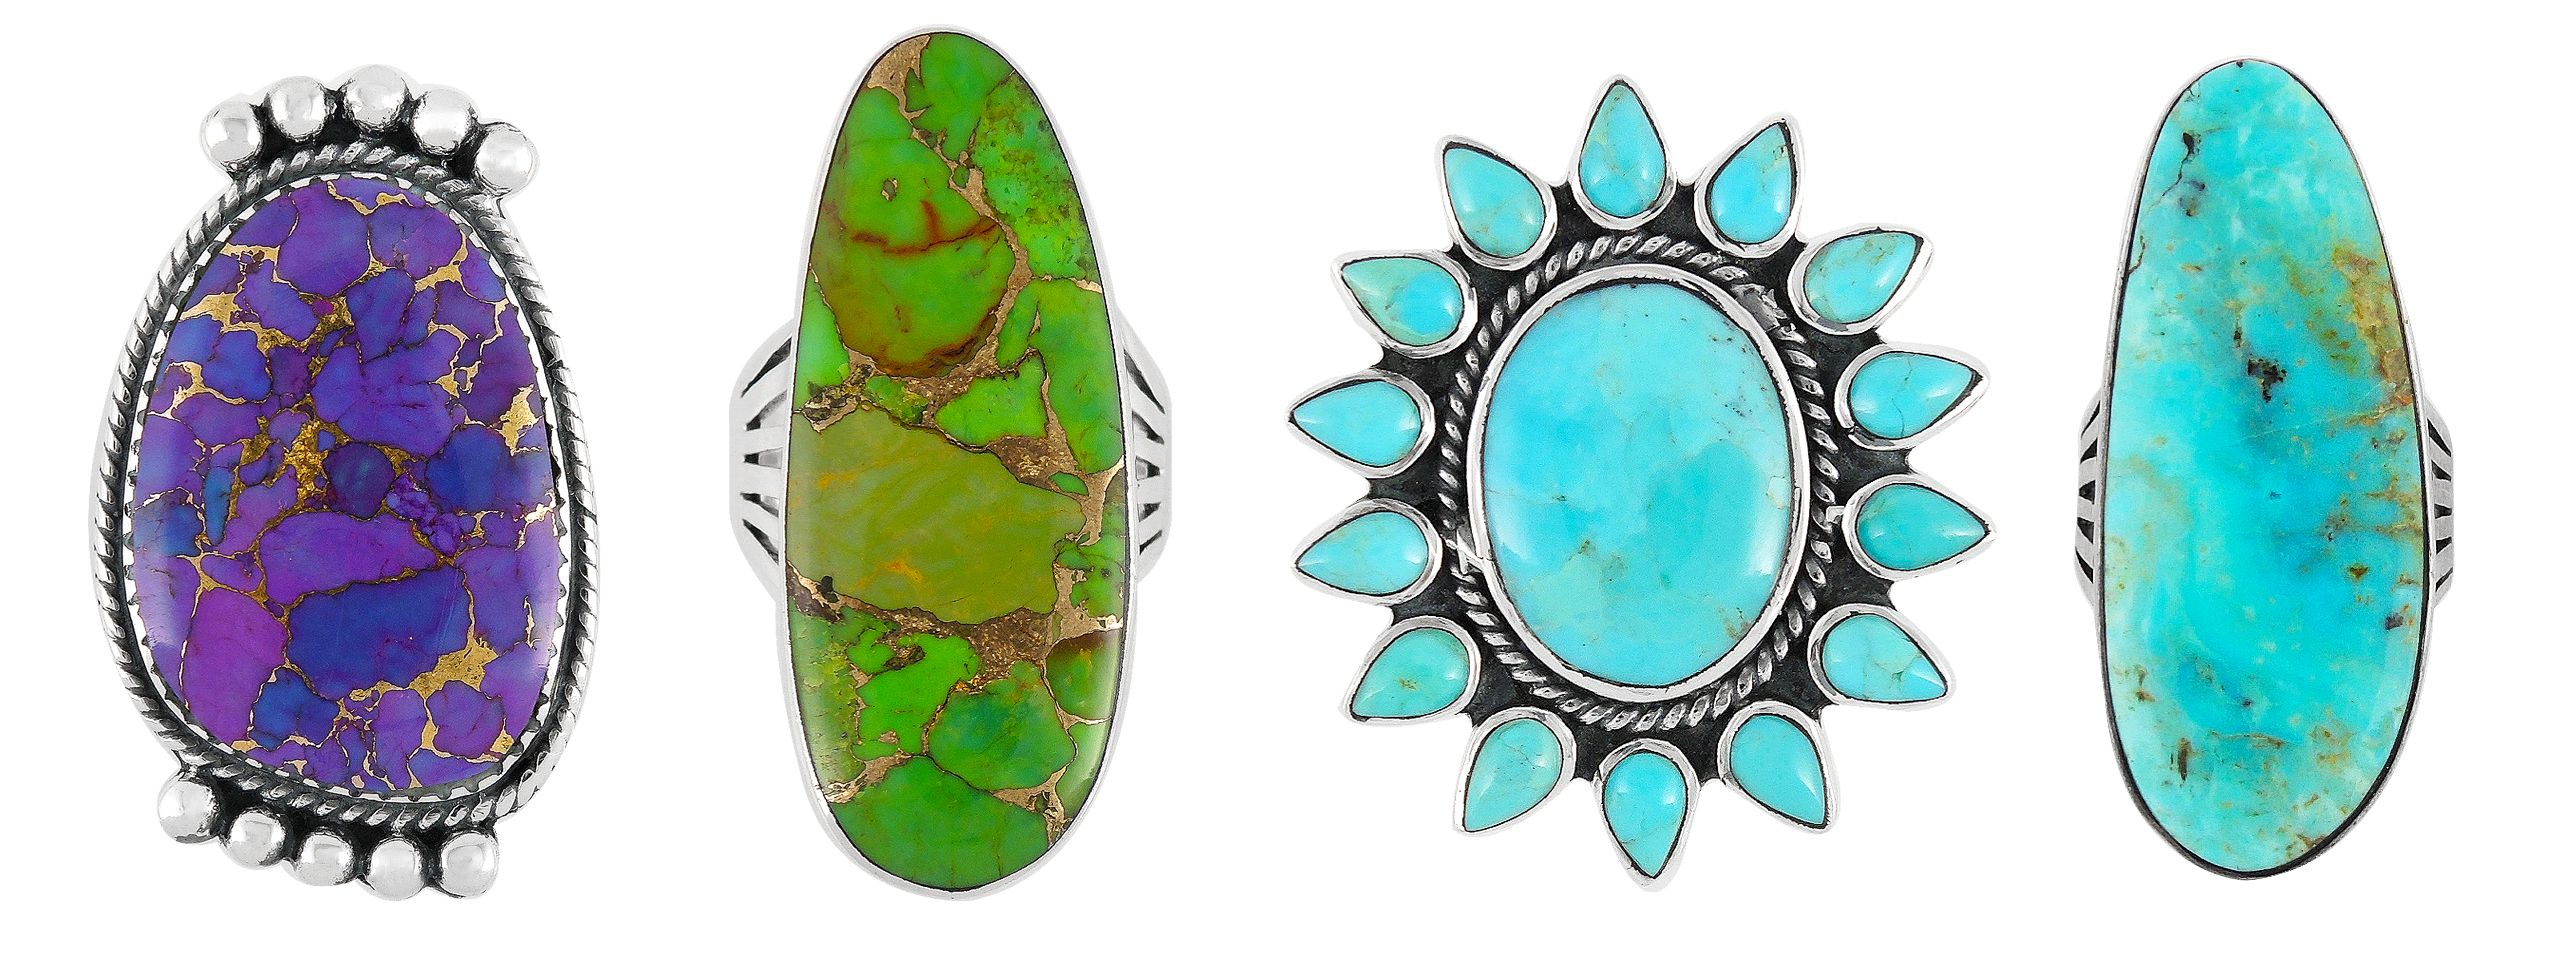 Real or Fake Turquoise? Turquoise Network Reveals the Facts ...